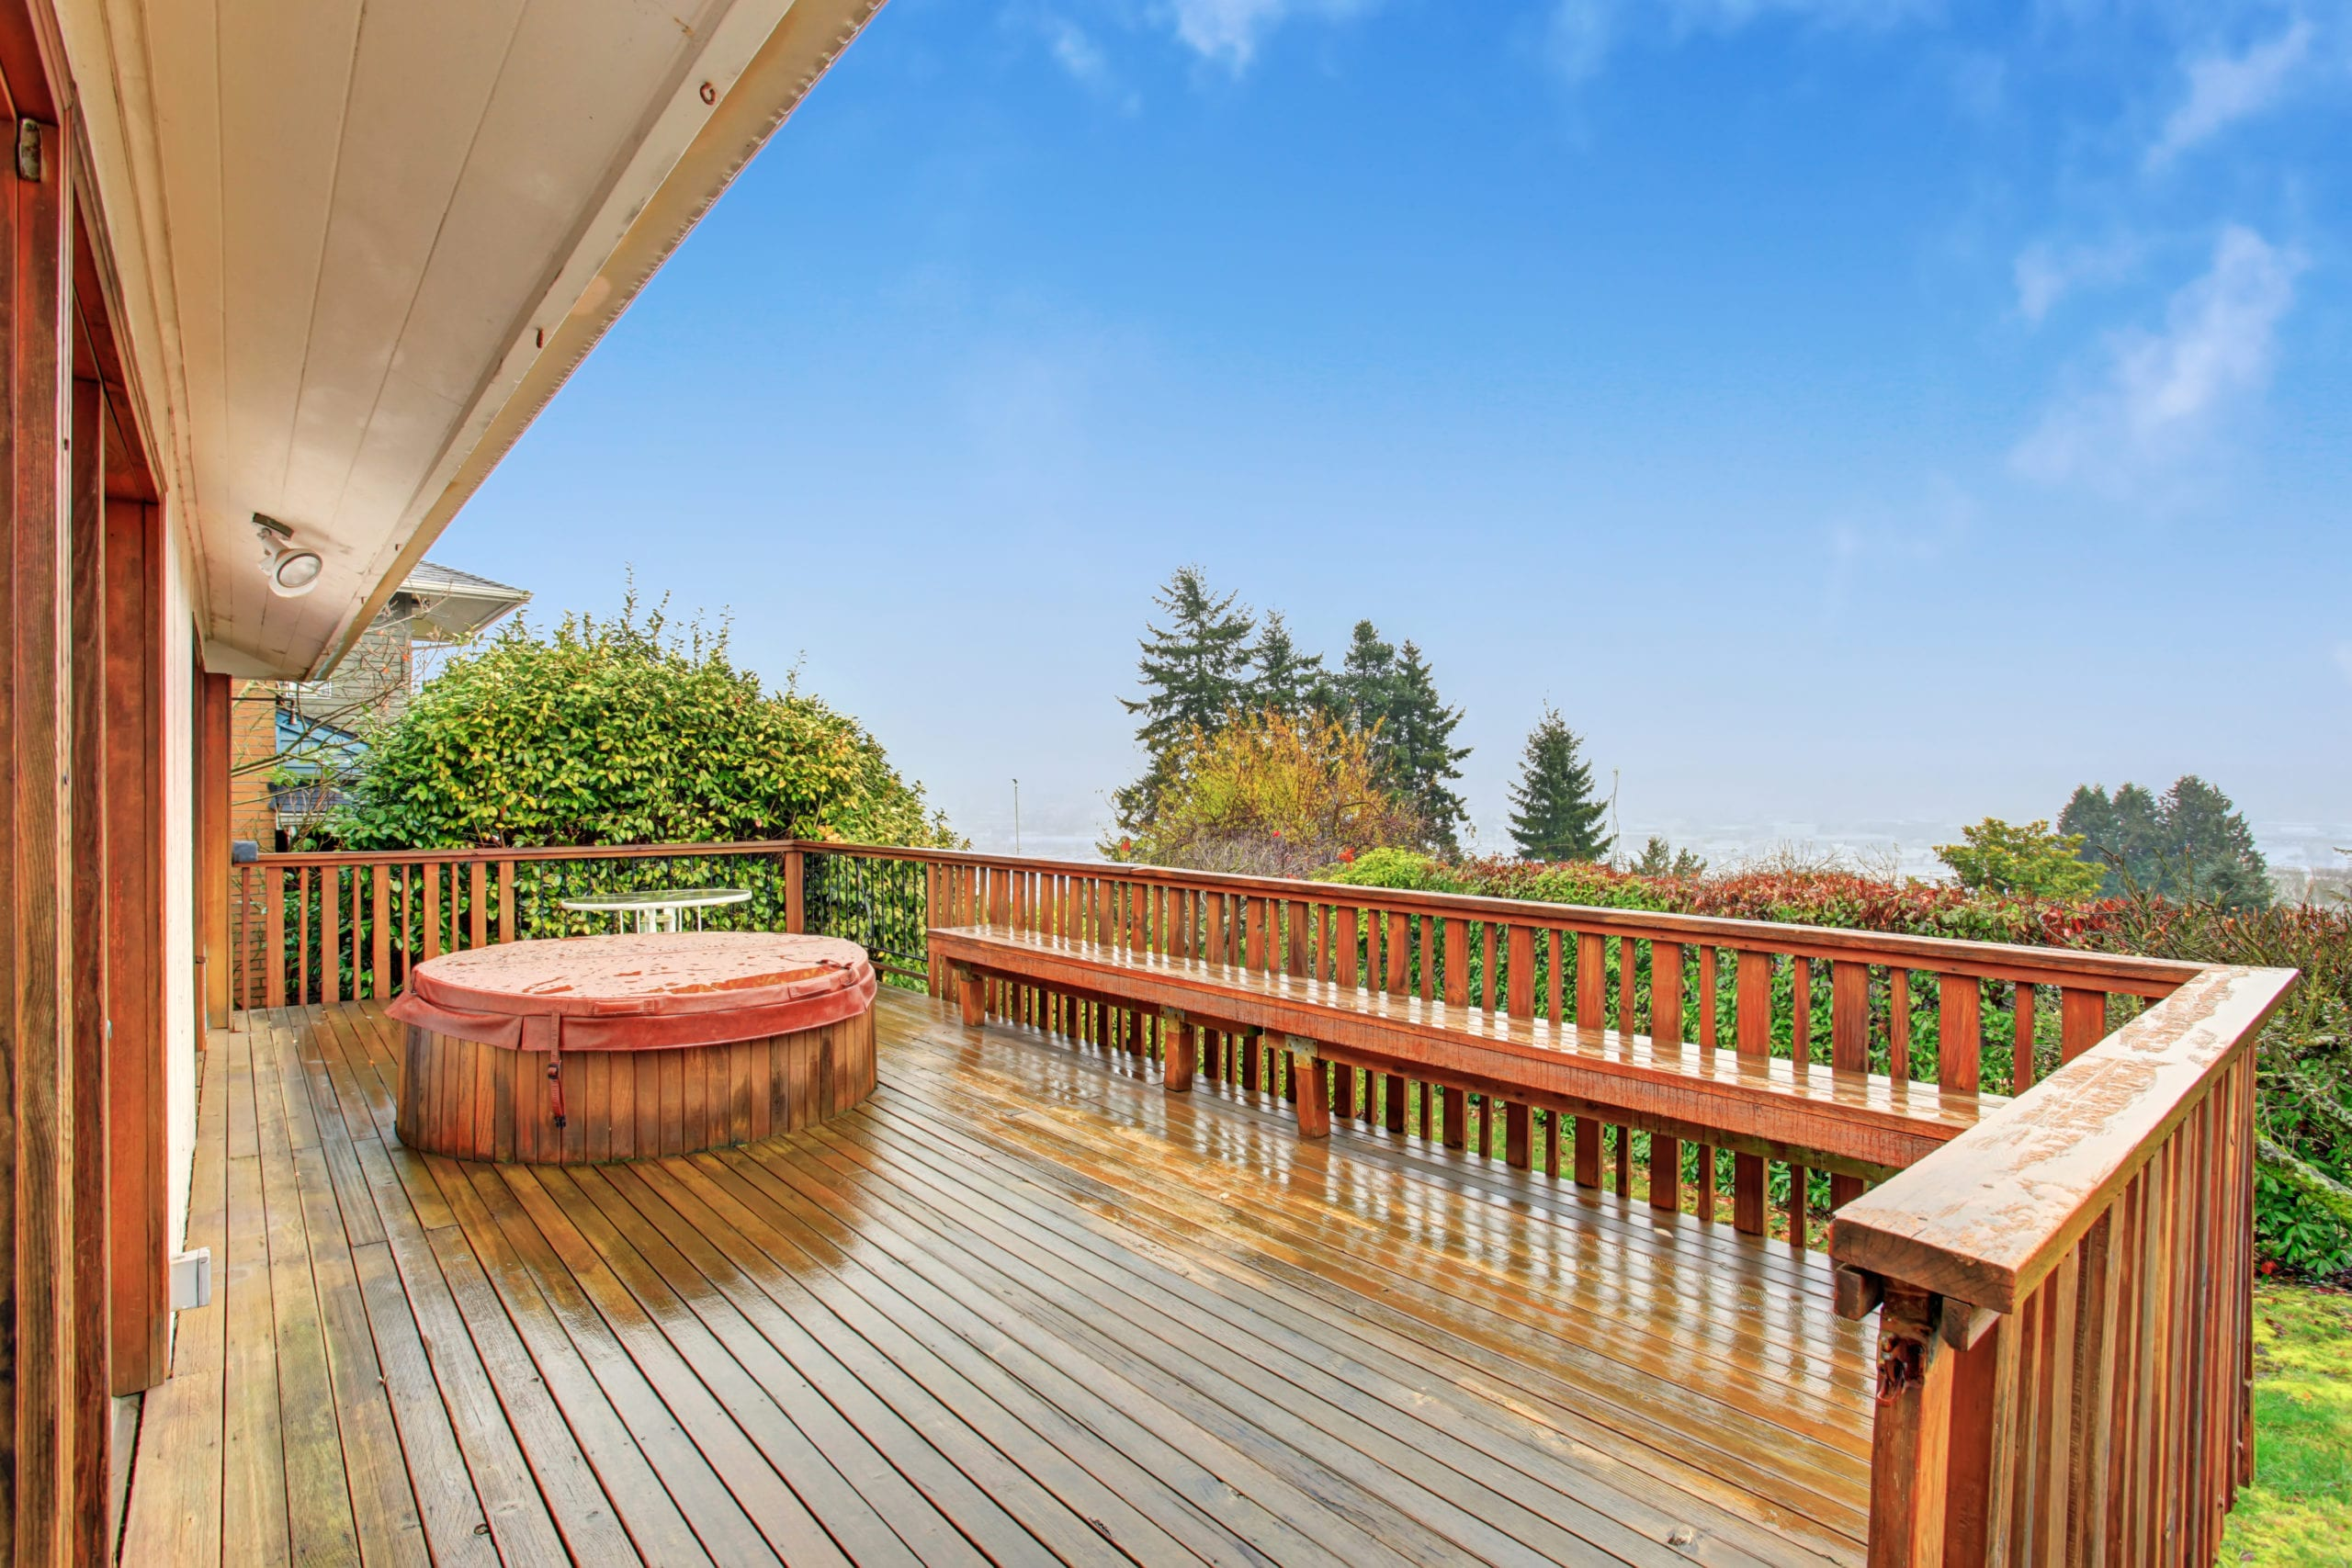 House deck with jacuzi